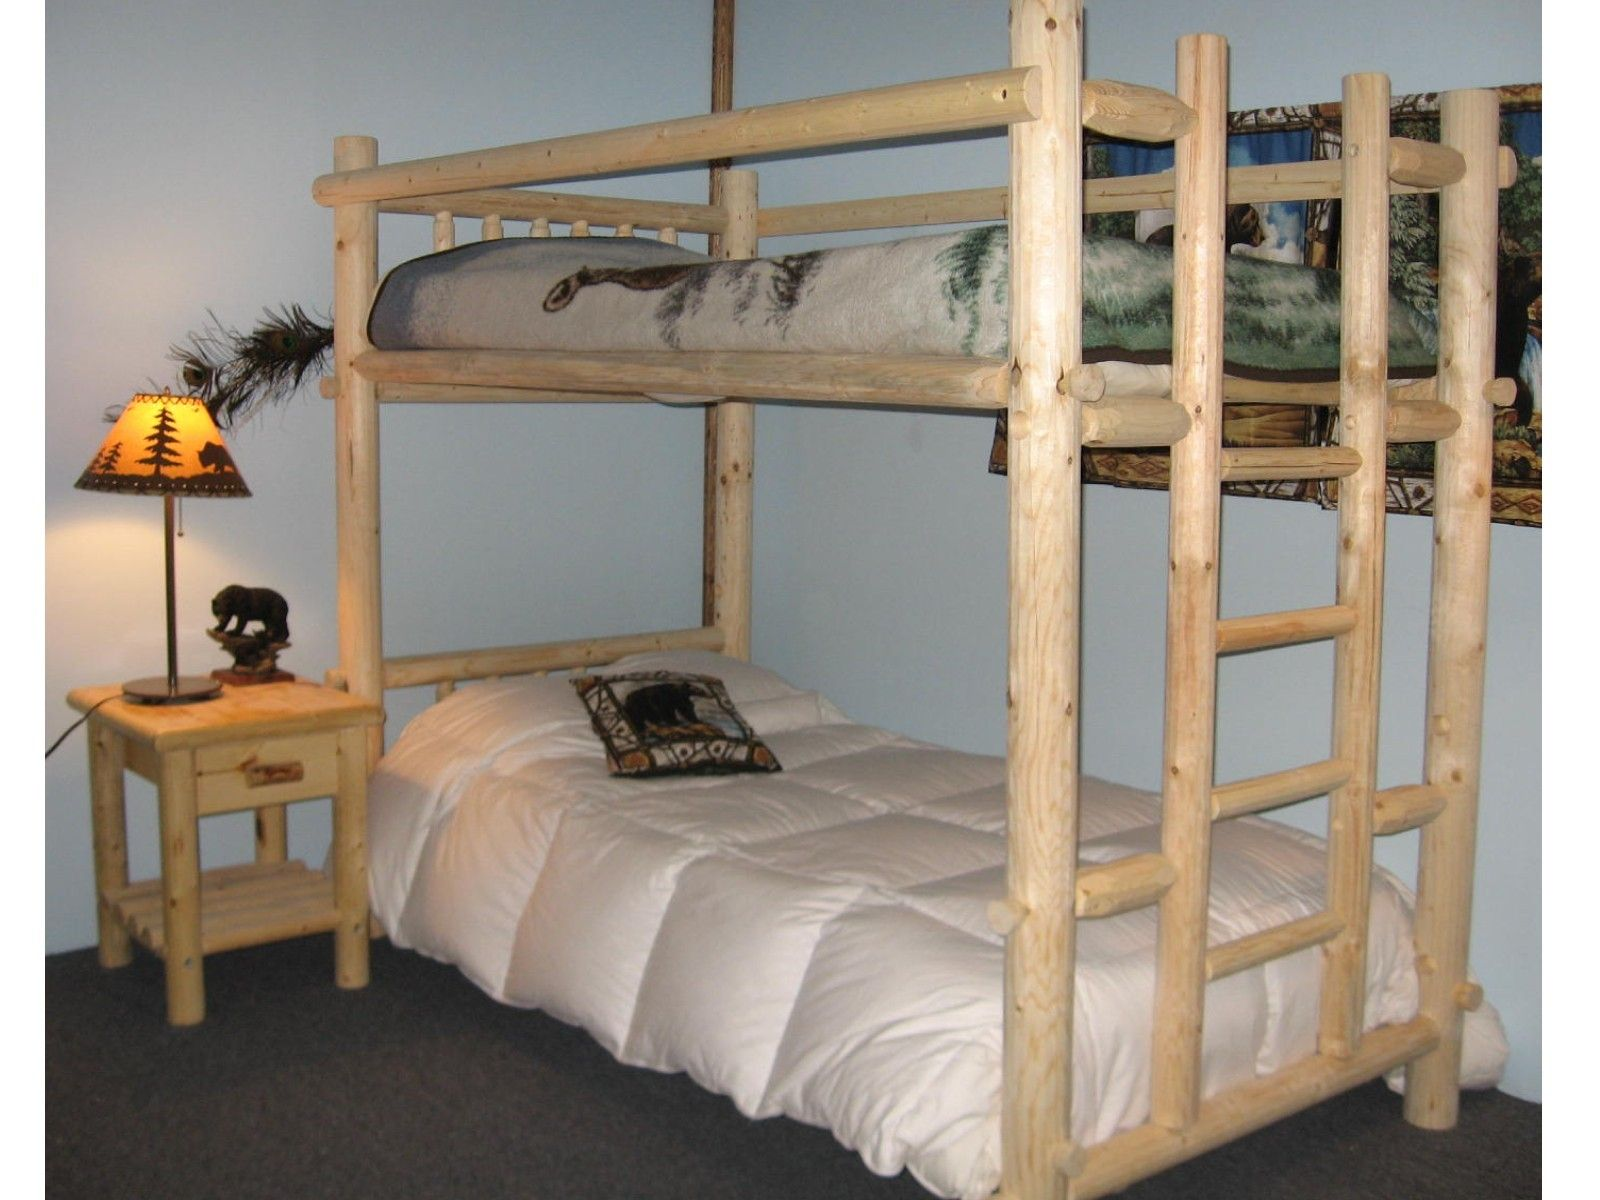 Rustic Unpolished Log Wood Bunk Bed Built In Ladder Combined With